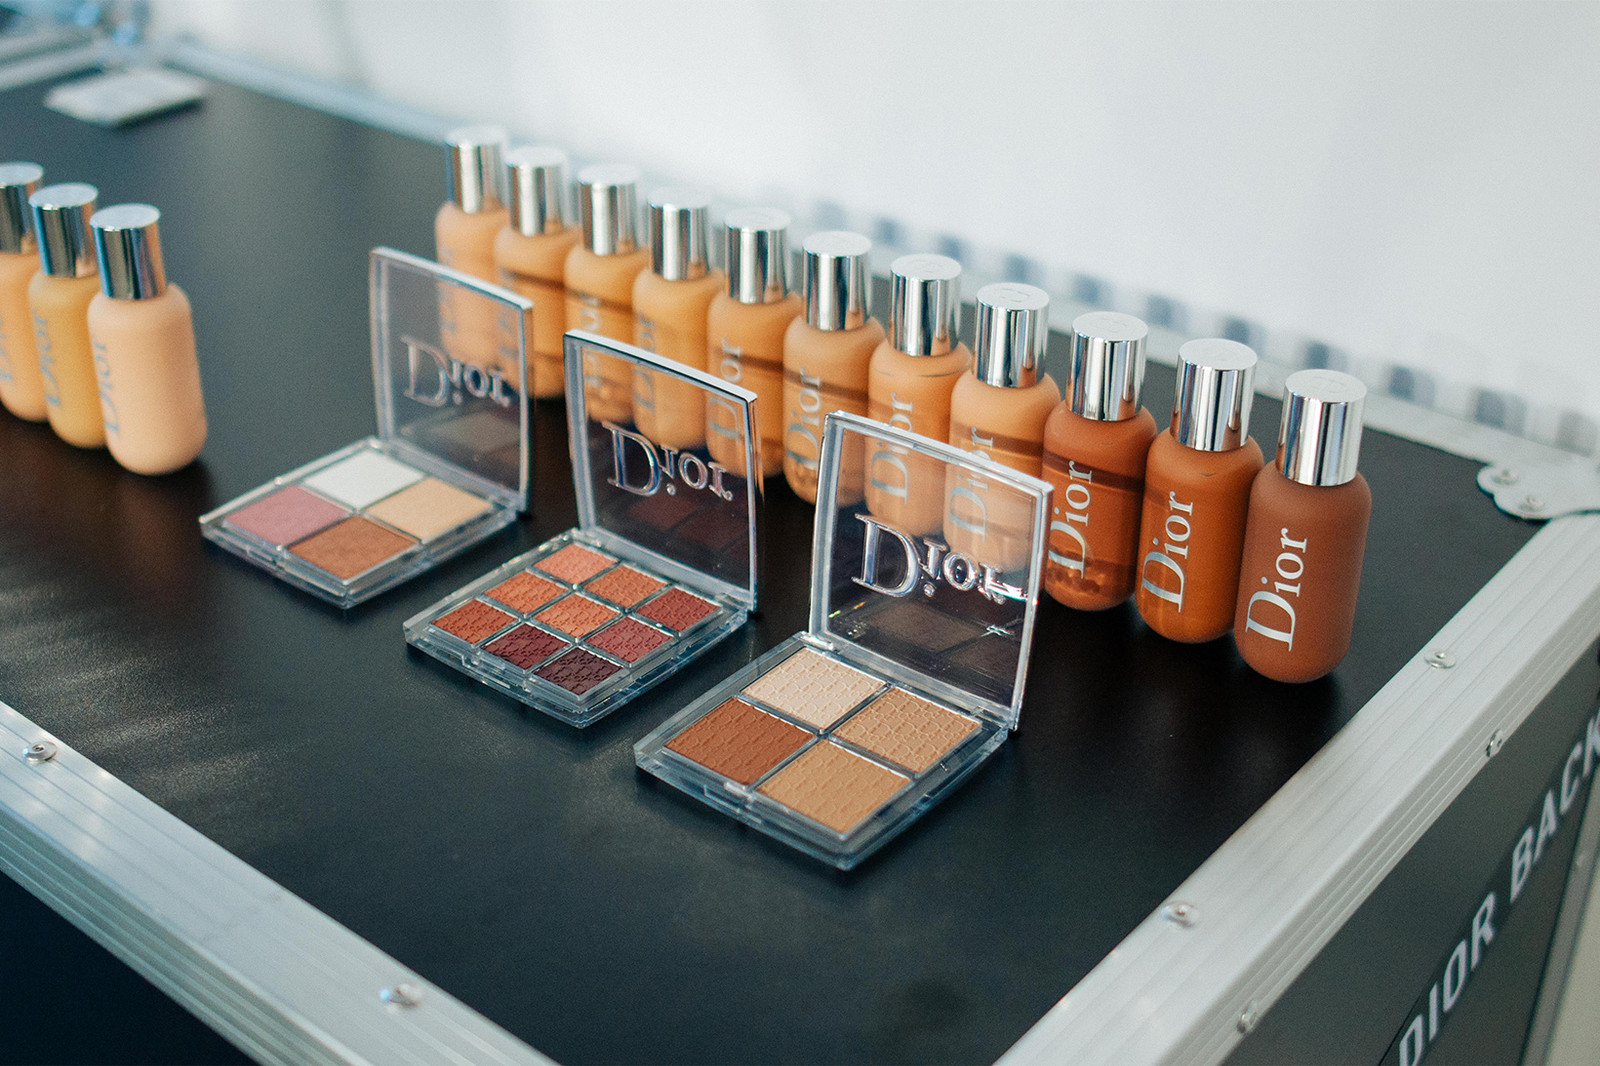 dior makeup peter philips interview beauty kim jones yoon ahn youth glow backstage